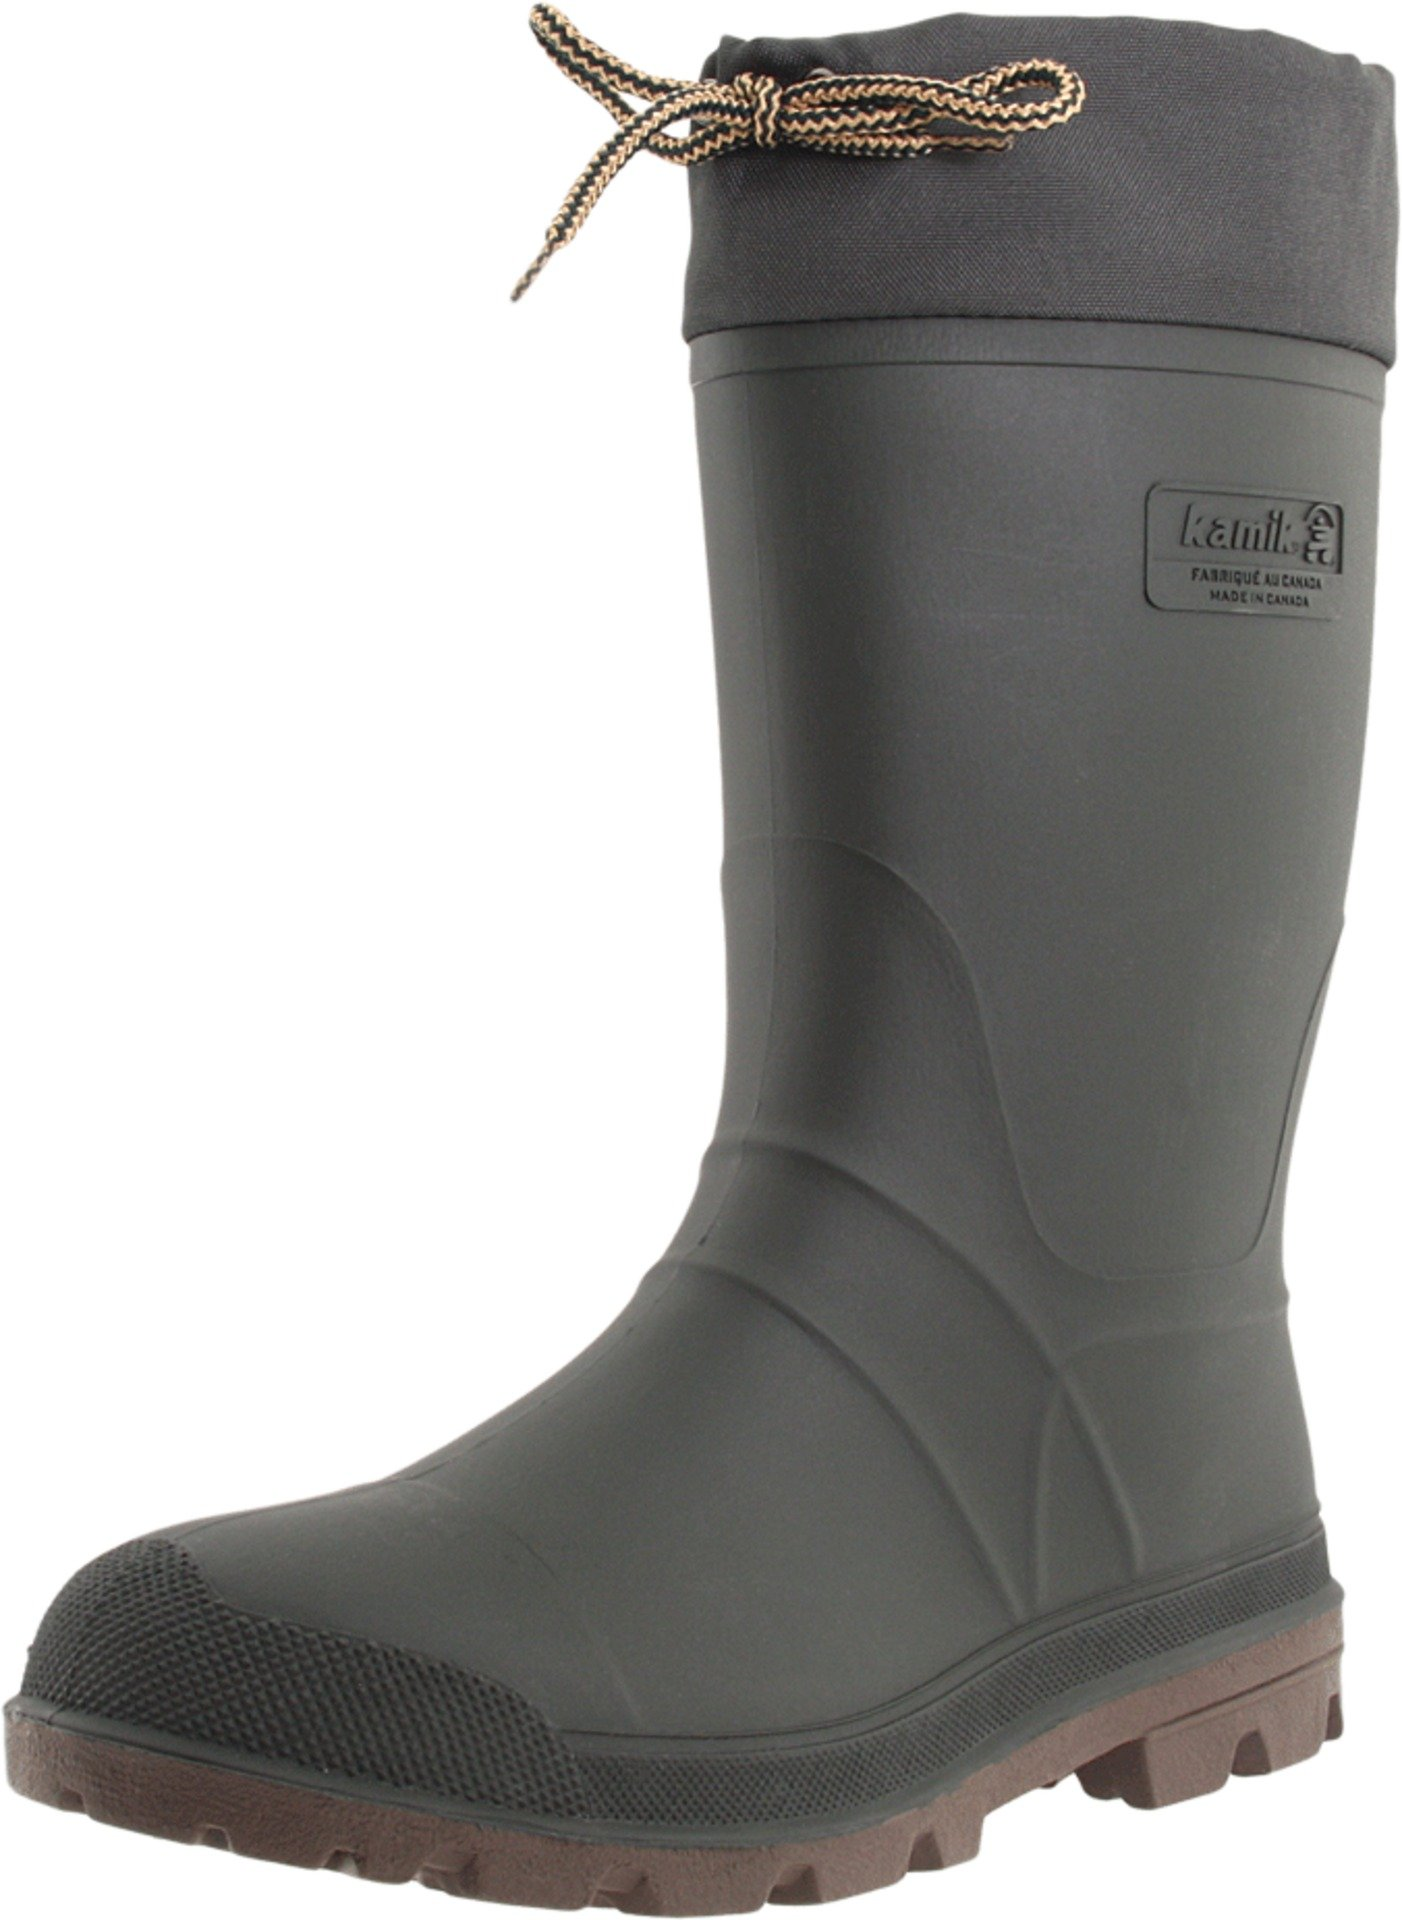 Us 39 M IcebreakerBottes 40taille Fabricant7 Homme 44 f4 Vert tr Kamik fyg76b